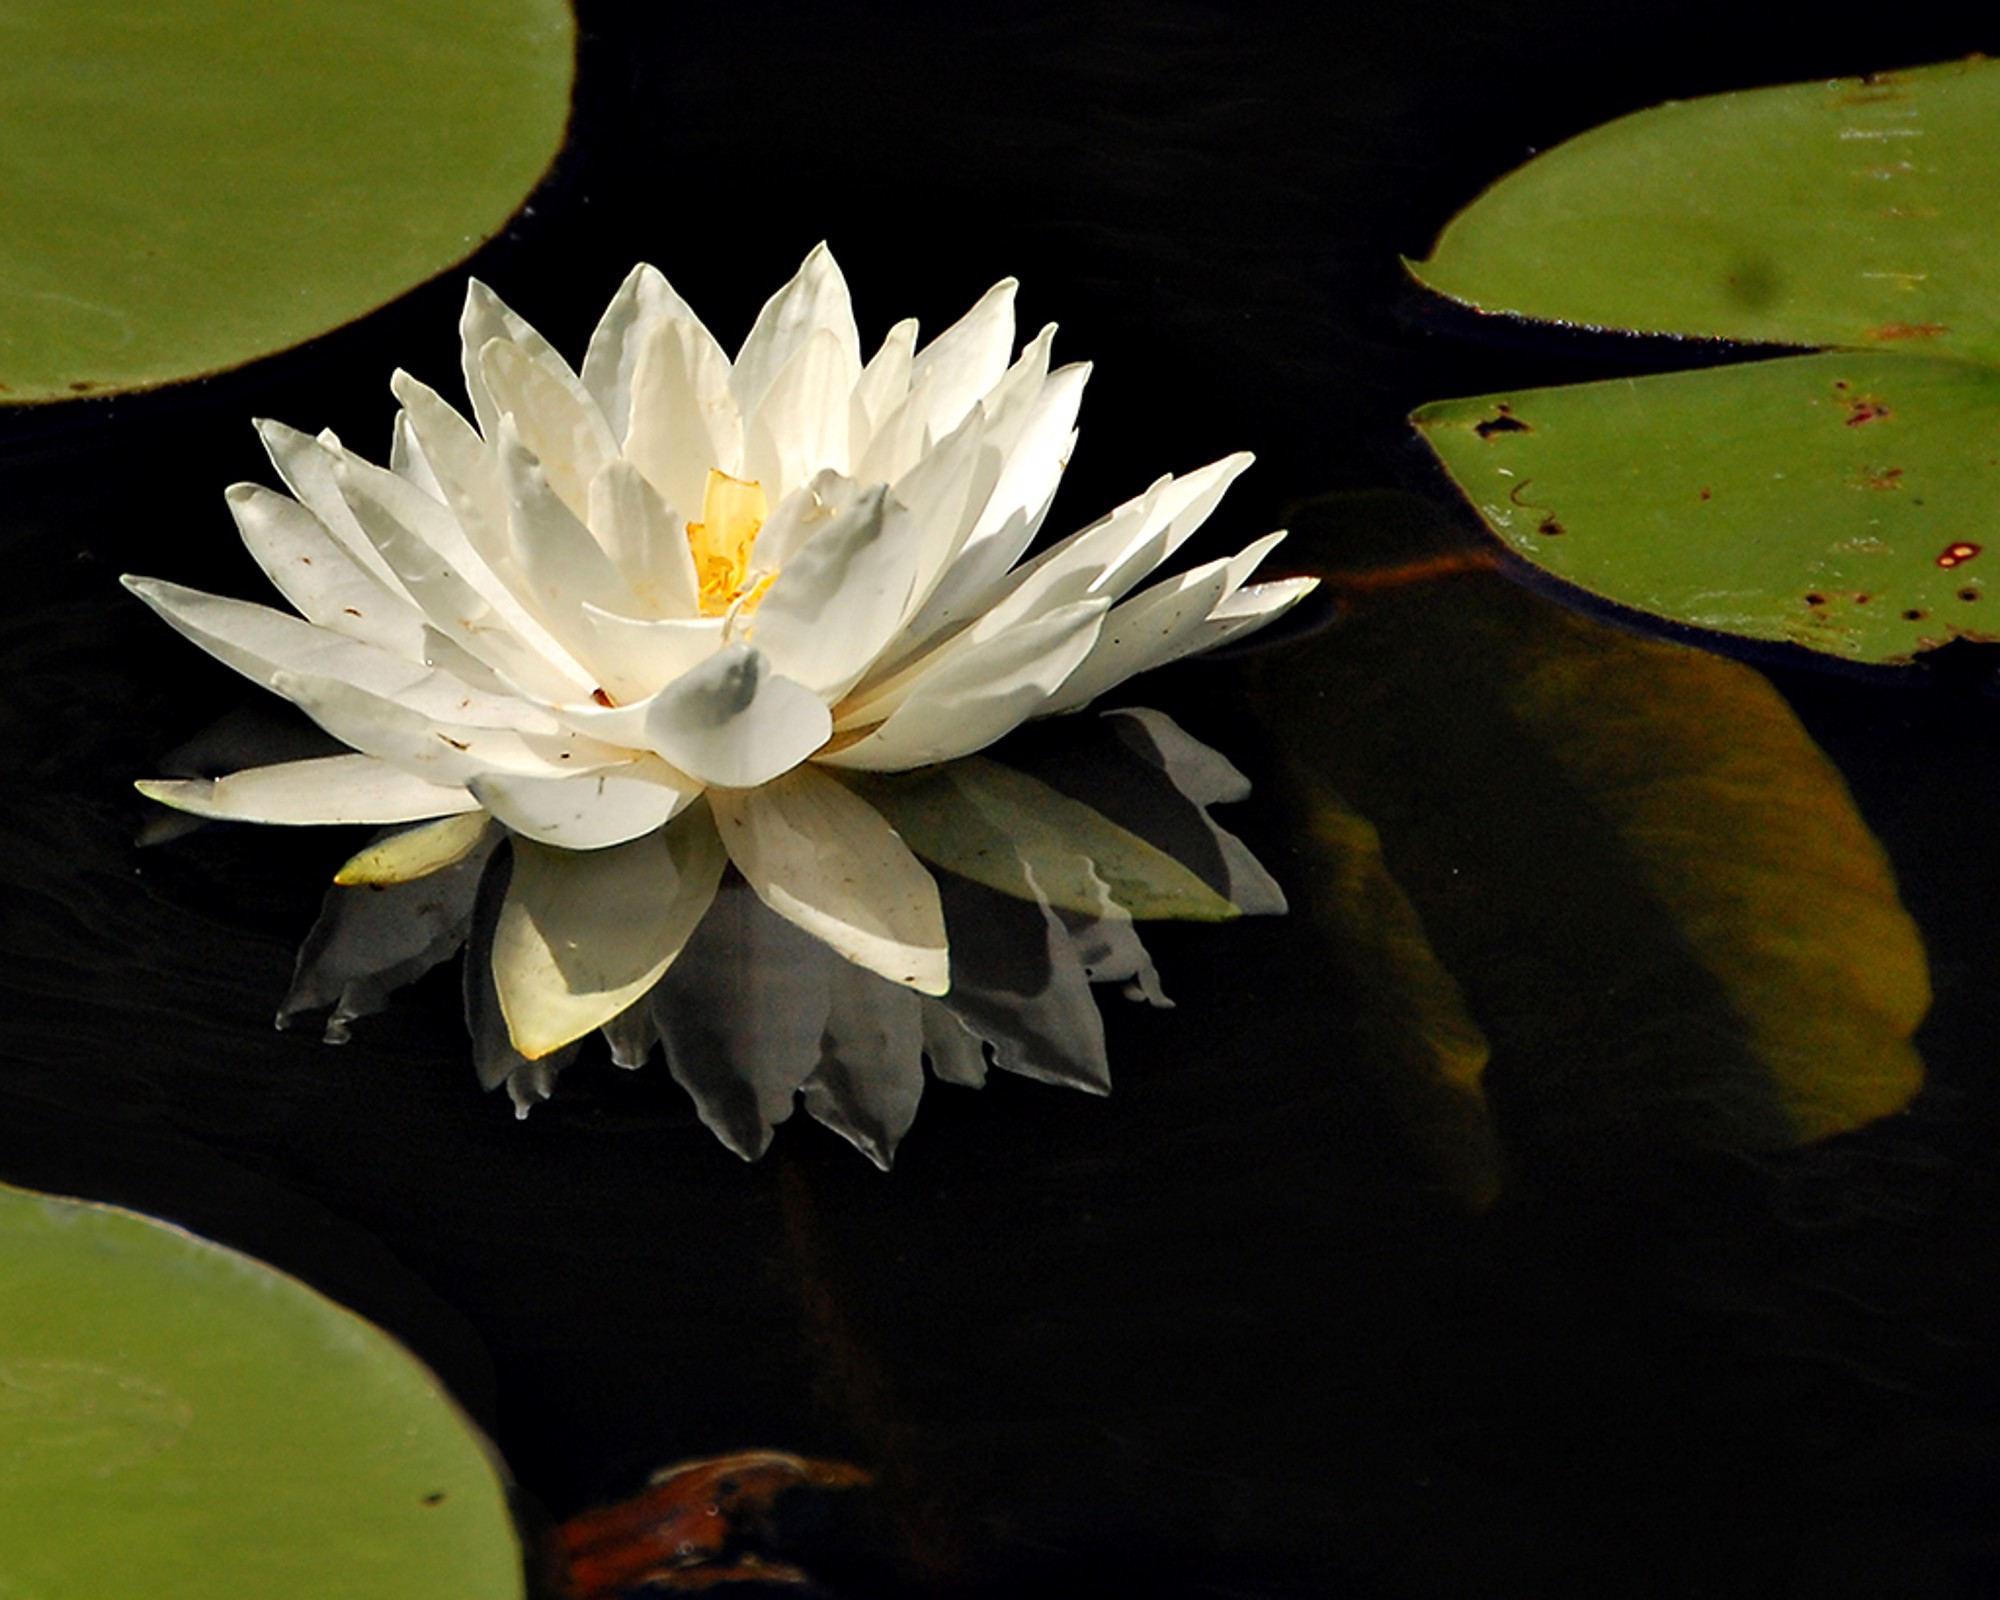 White Lotus-S by Mark Lange